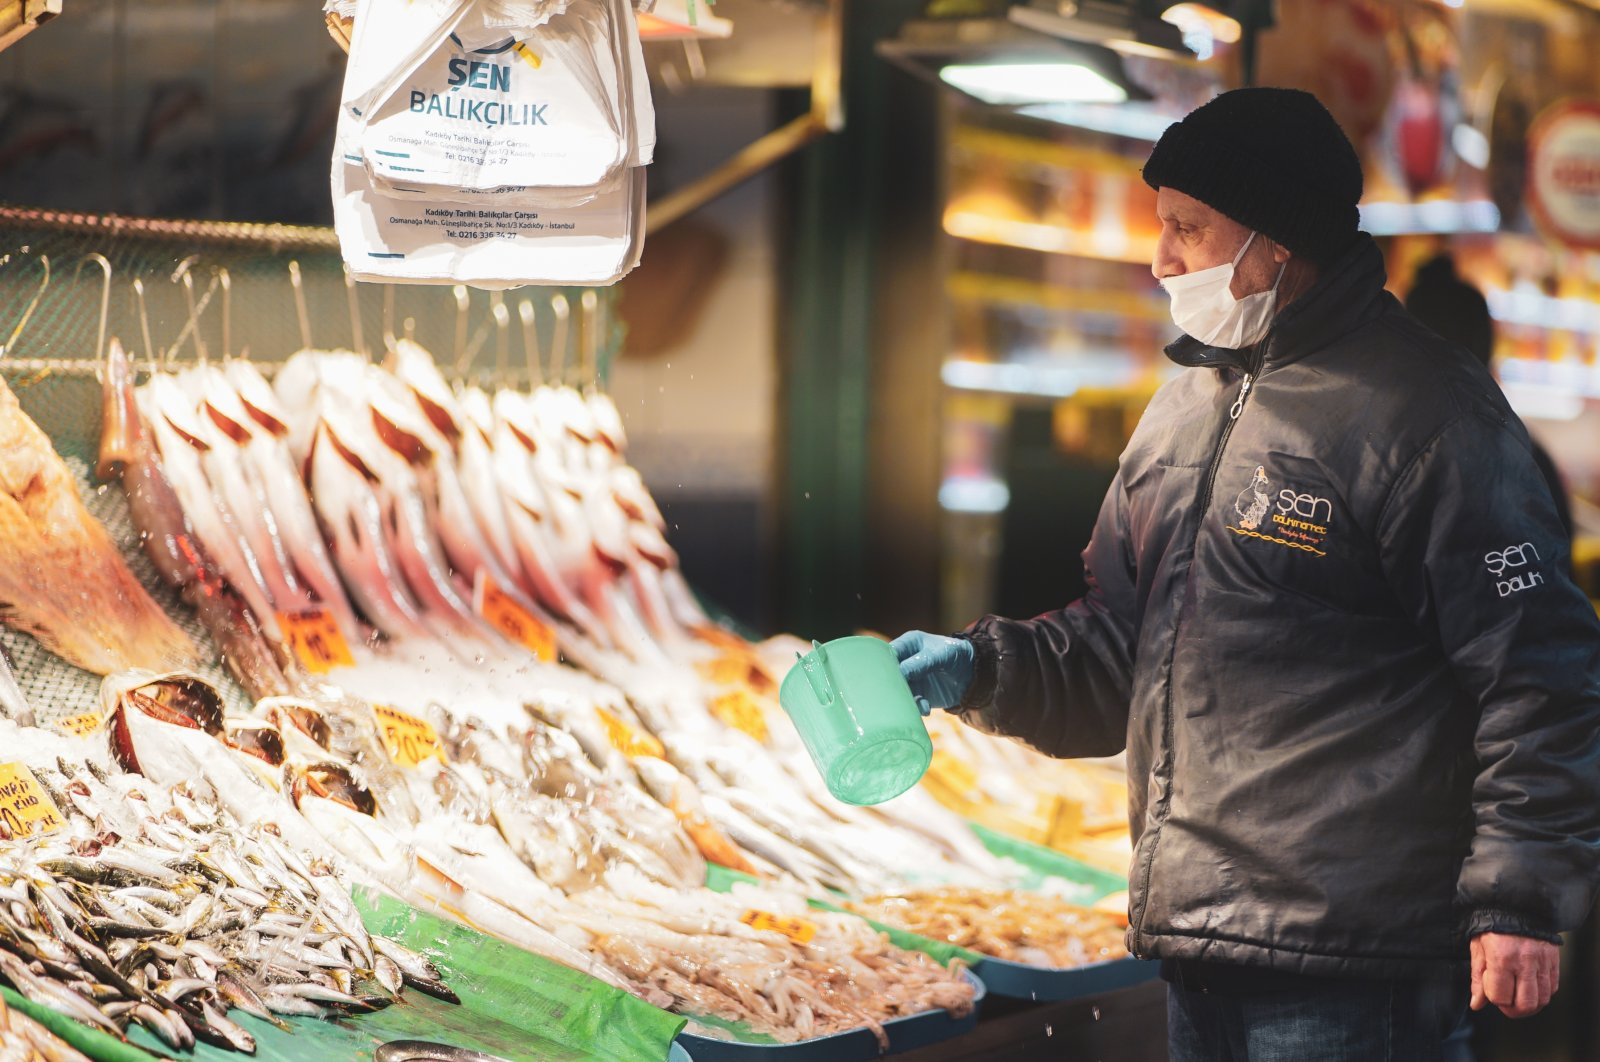 A fisherman wearing a protection mask against the COVID-19 pandemic stands at the counter in a fish market in Istanbul, Turkey, Feb. 4, 2020. (Shutterstock Photo)